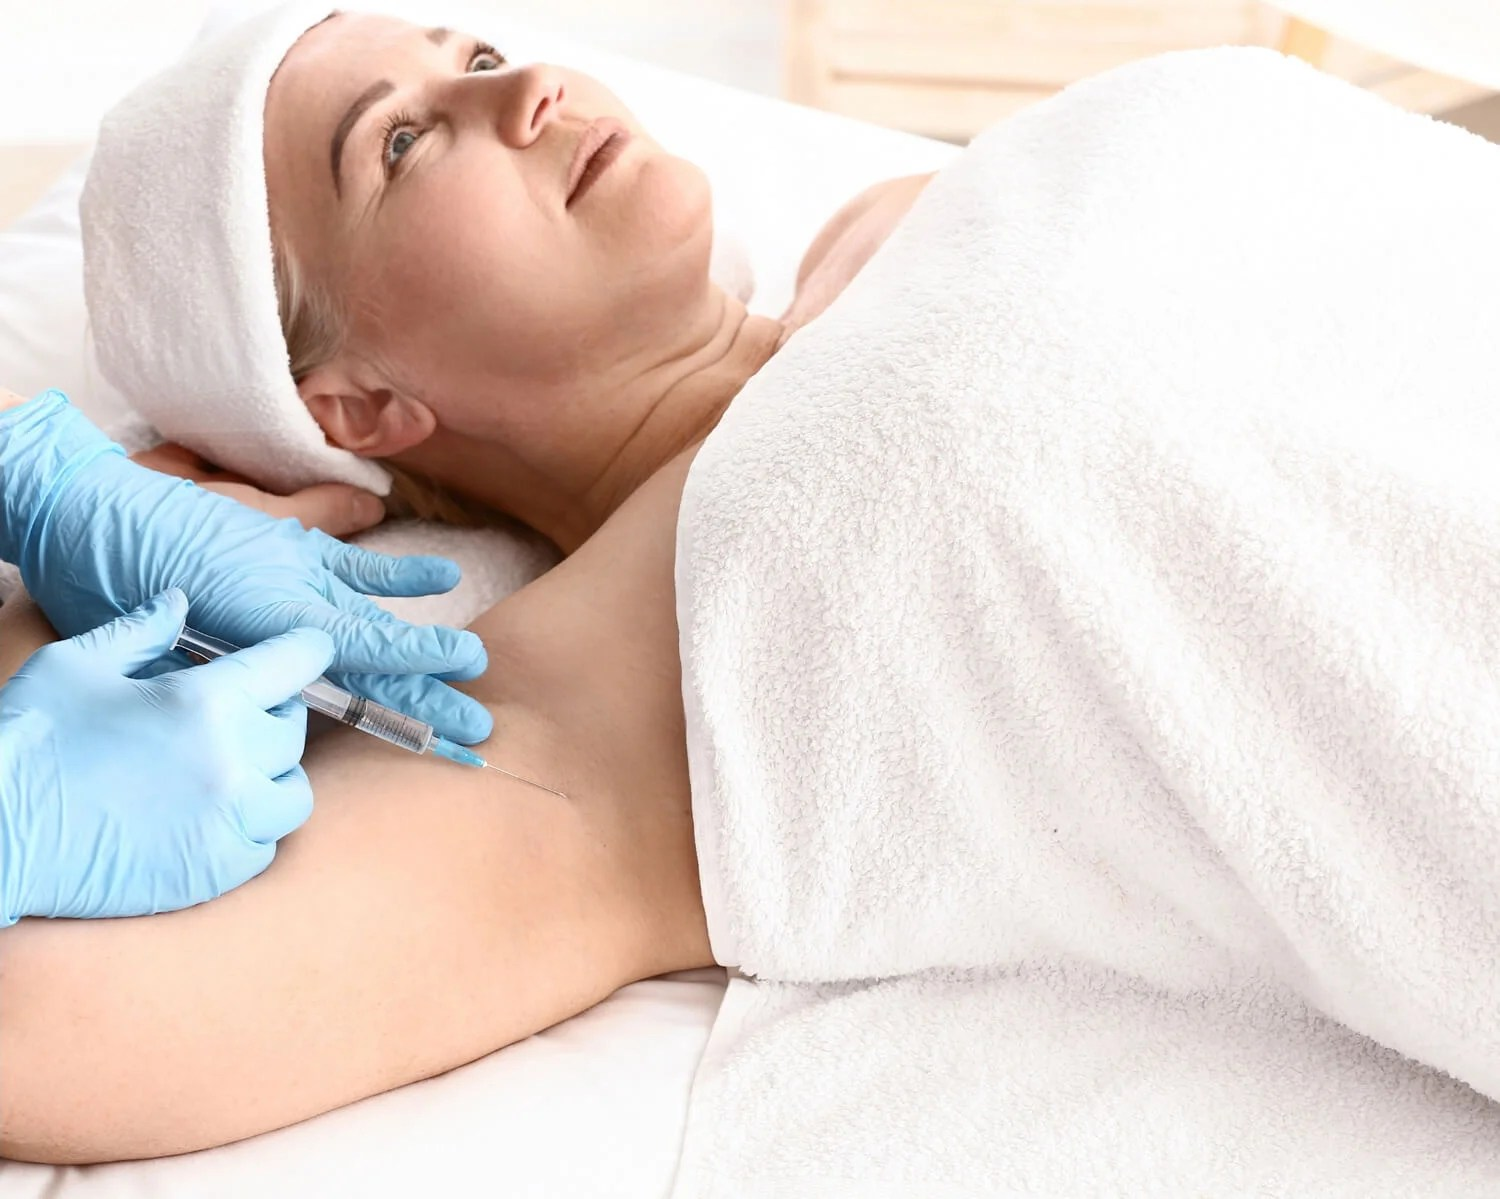 Botox Injections in Wilmington, NC